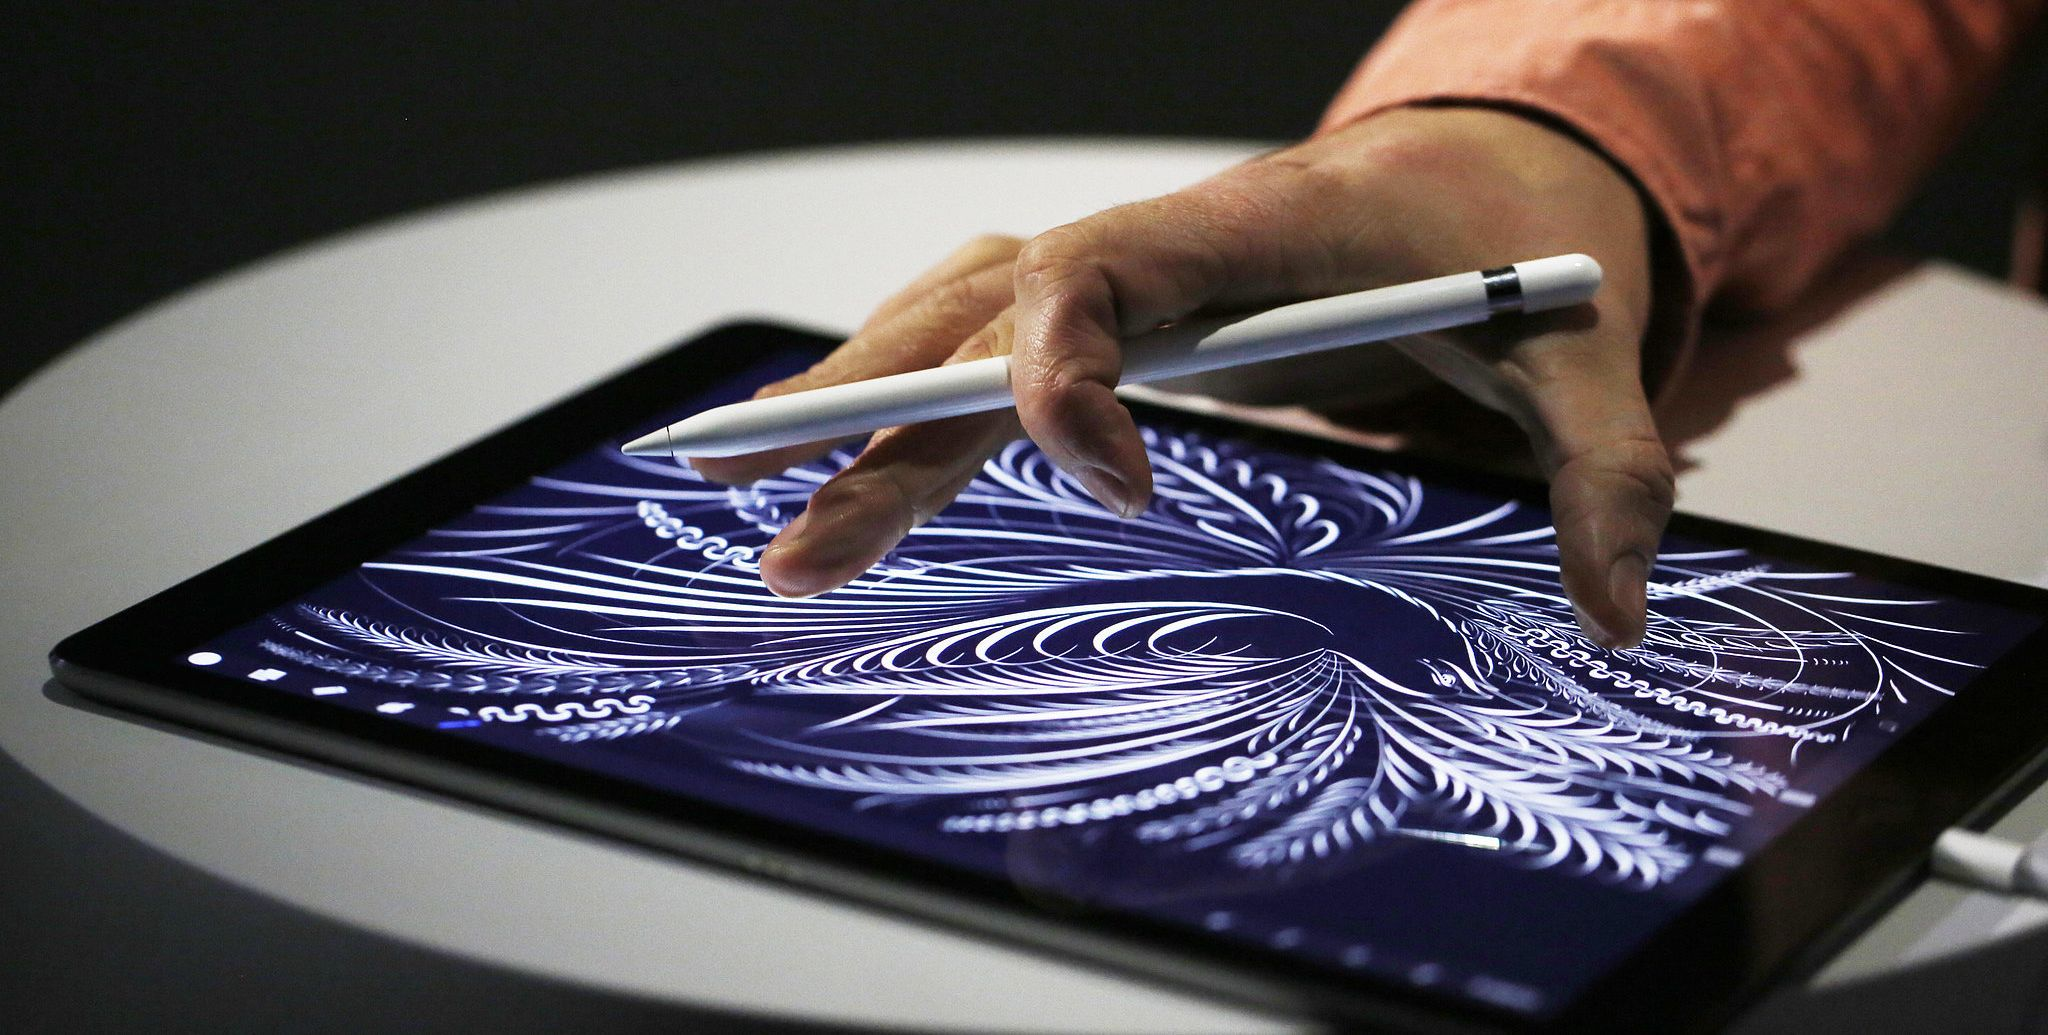 Демонстрация возможностей Apple Pencil